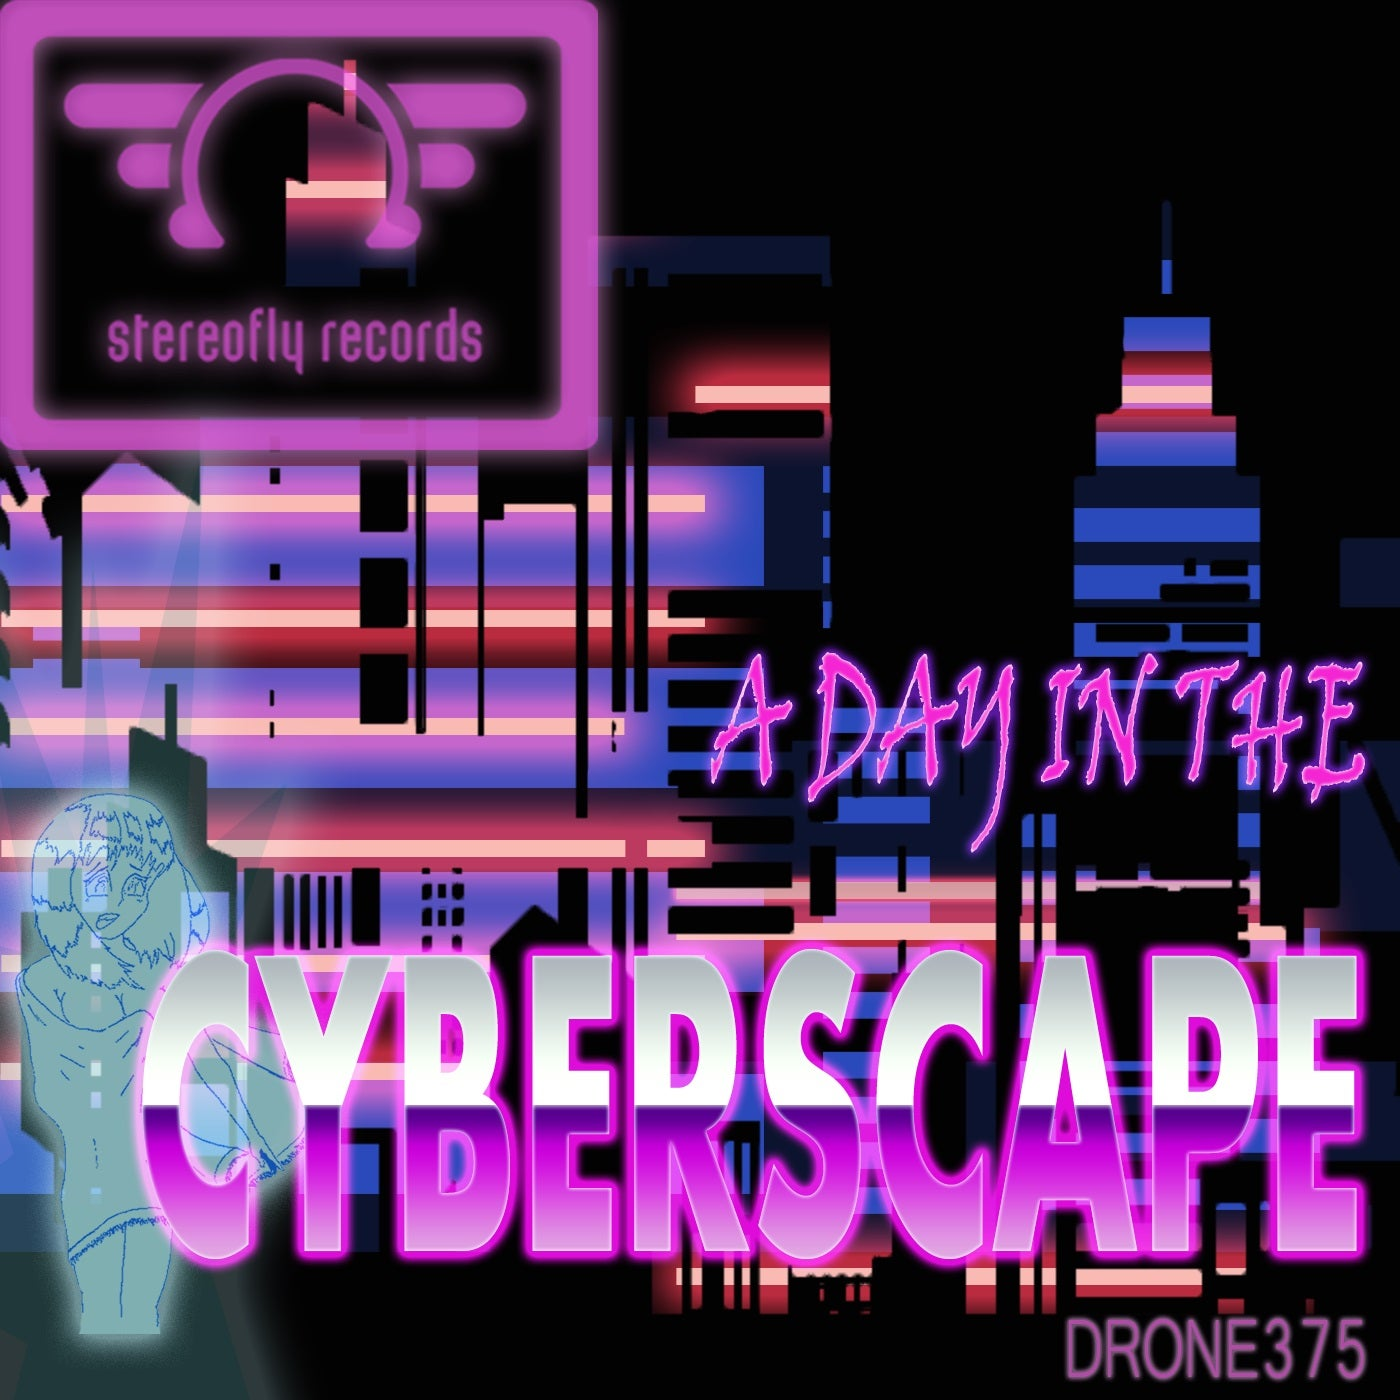 Drone375 - A Day in the Cyberscape (2021)